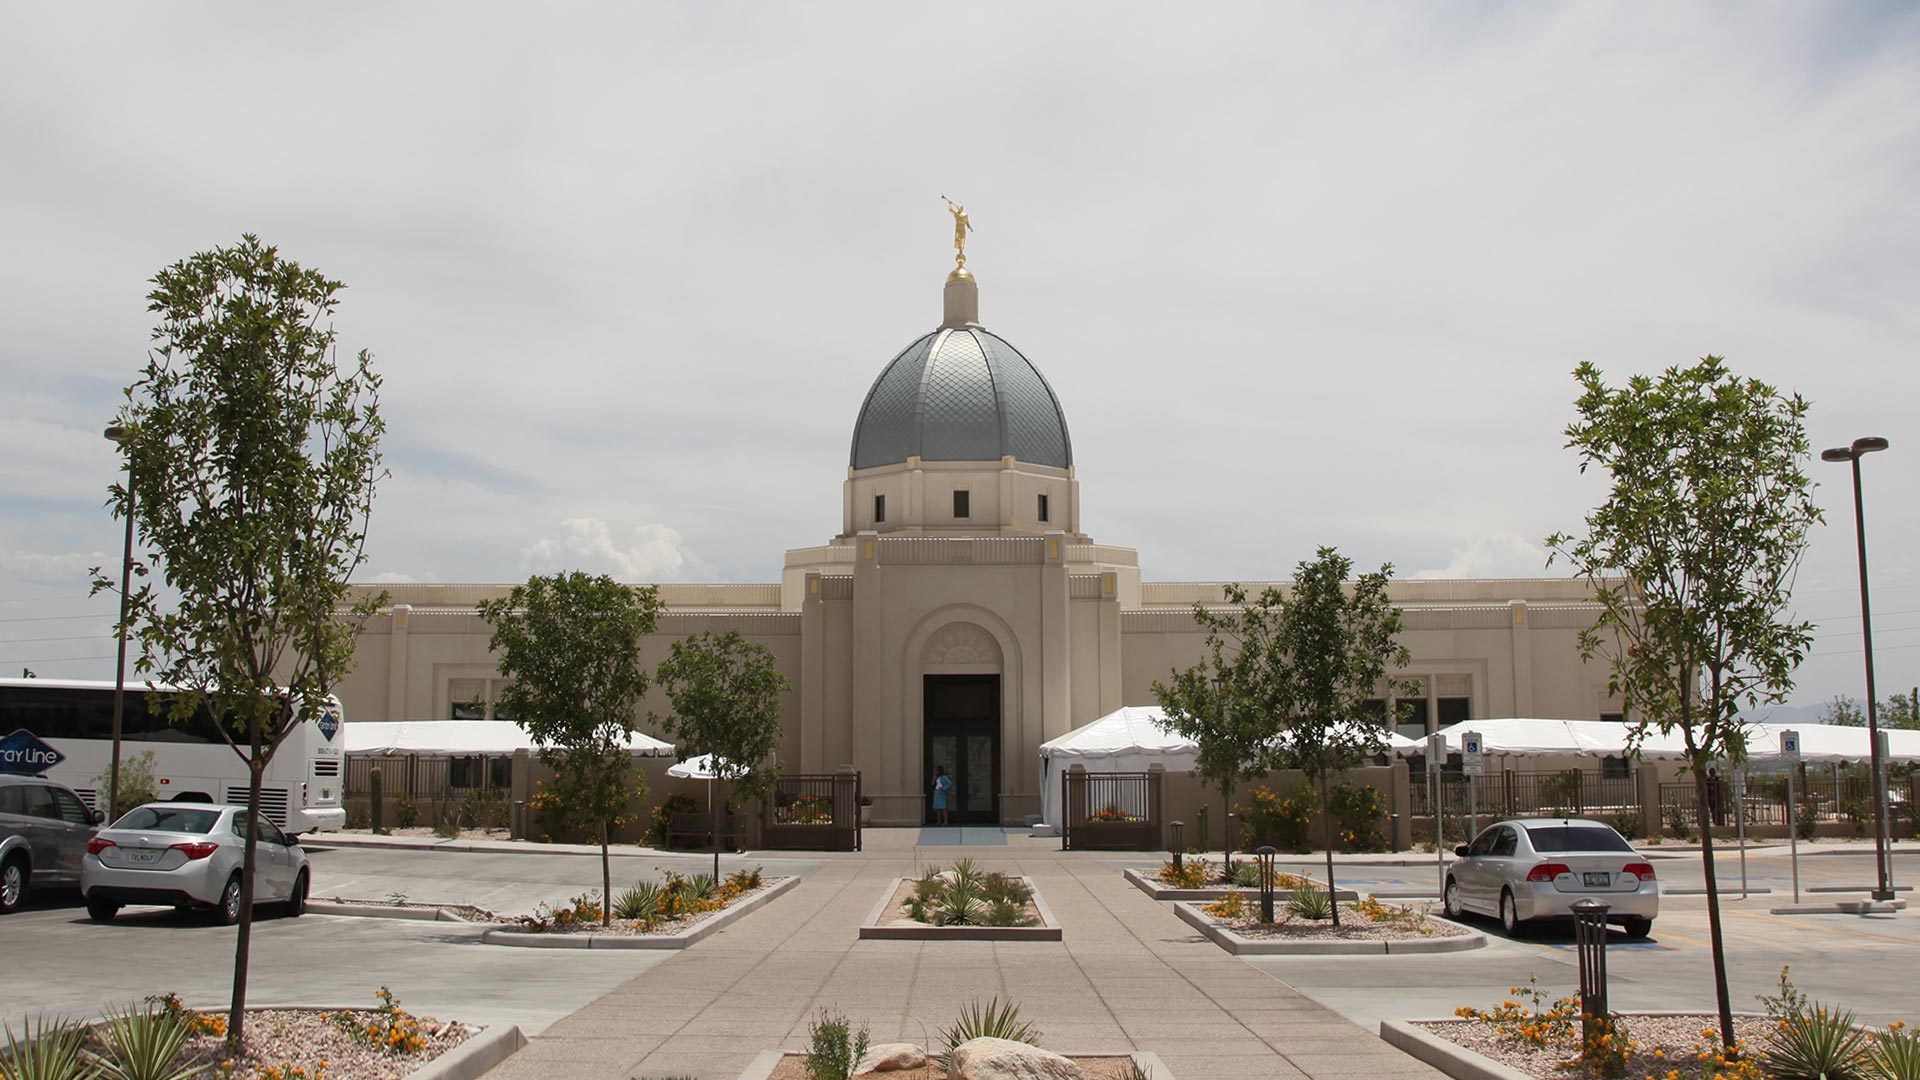 Tucson Mormon Temple as it readies for public tours in early June, 2017